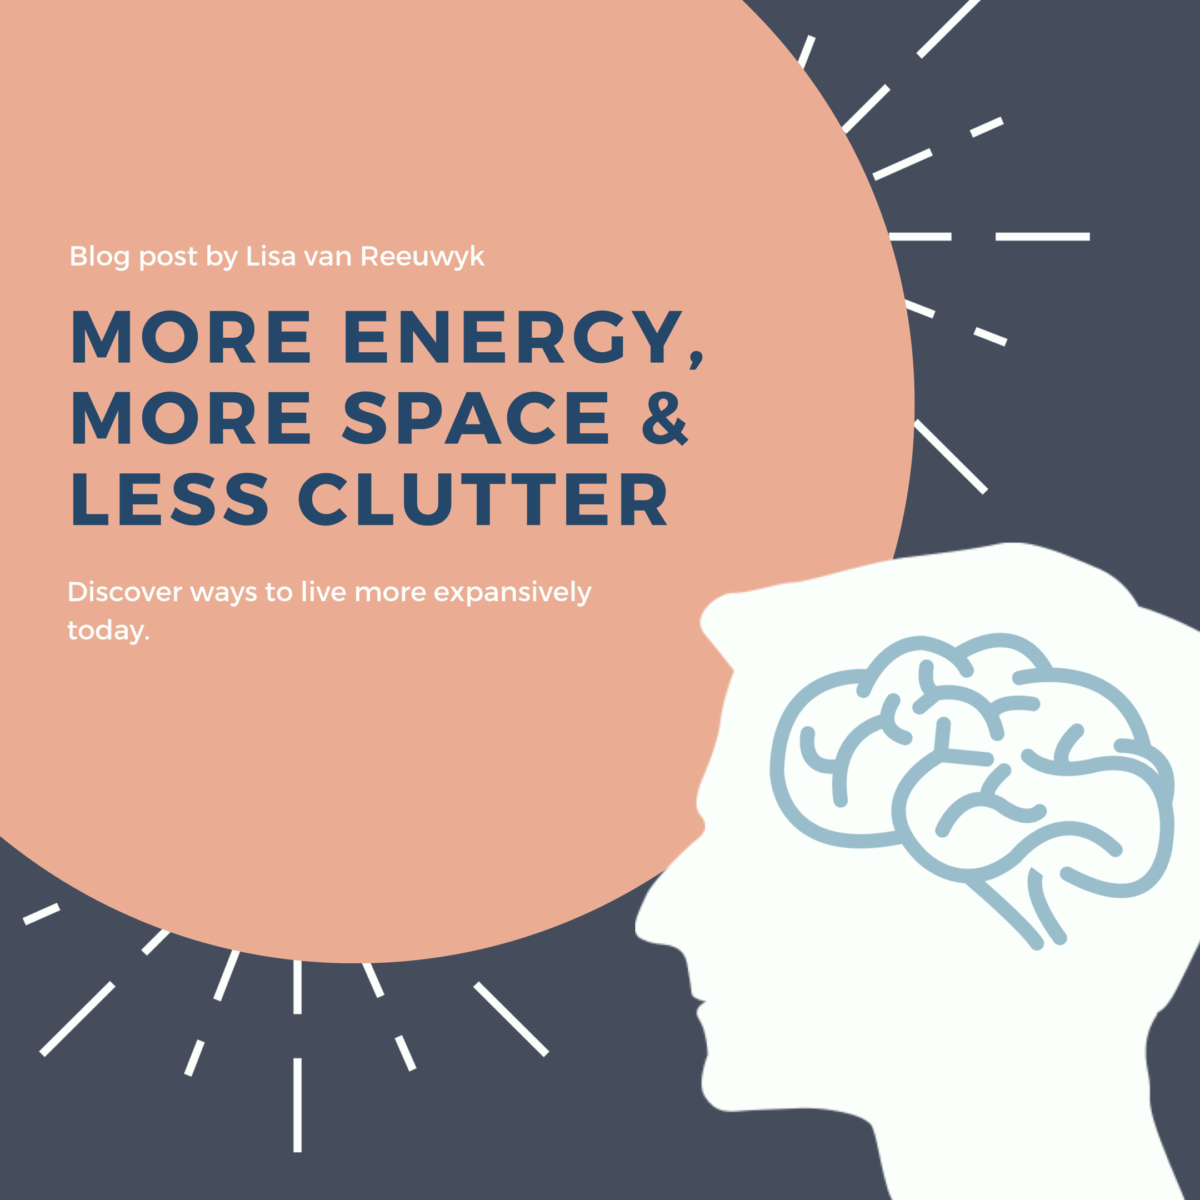 More energy, more space and less clutter